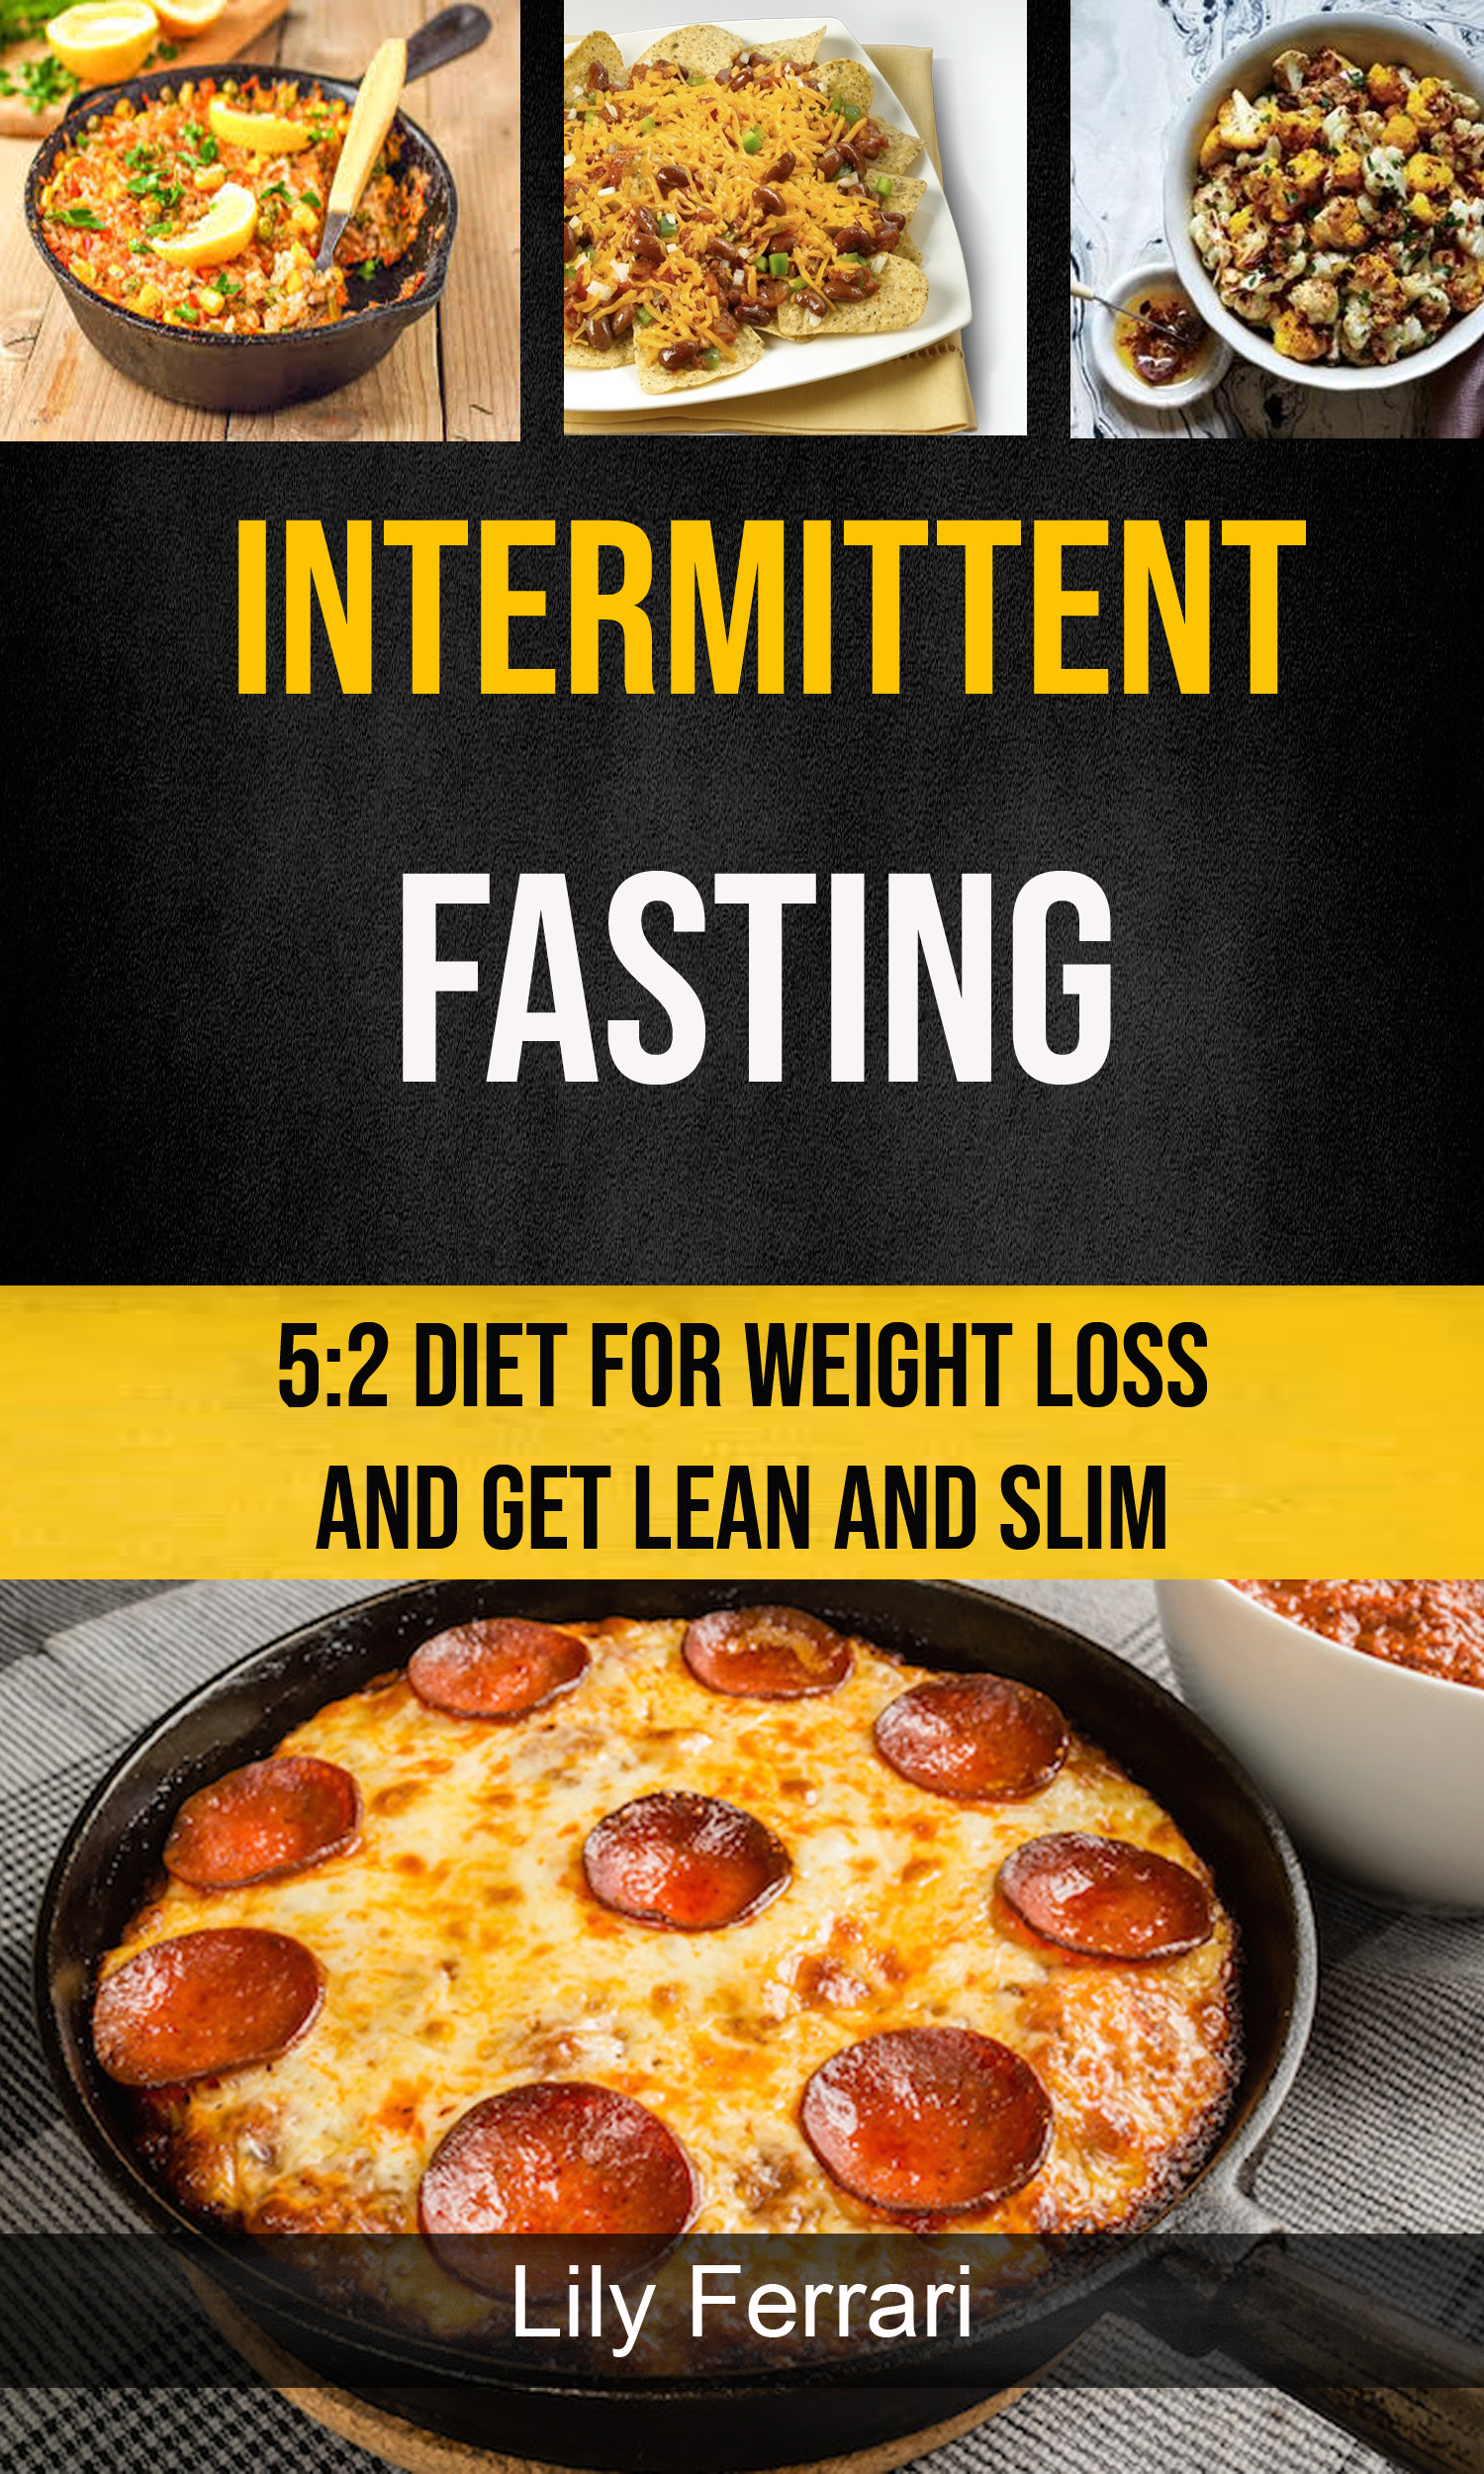 Intermittent fasting: 5:2 diet for weight loss and get lean and slim